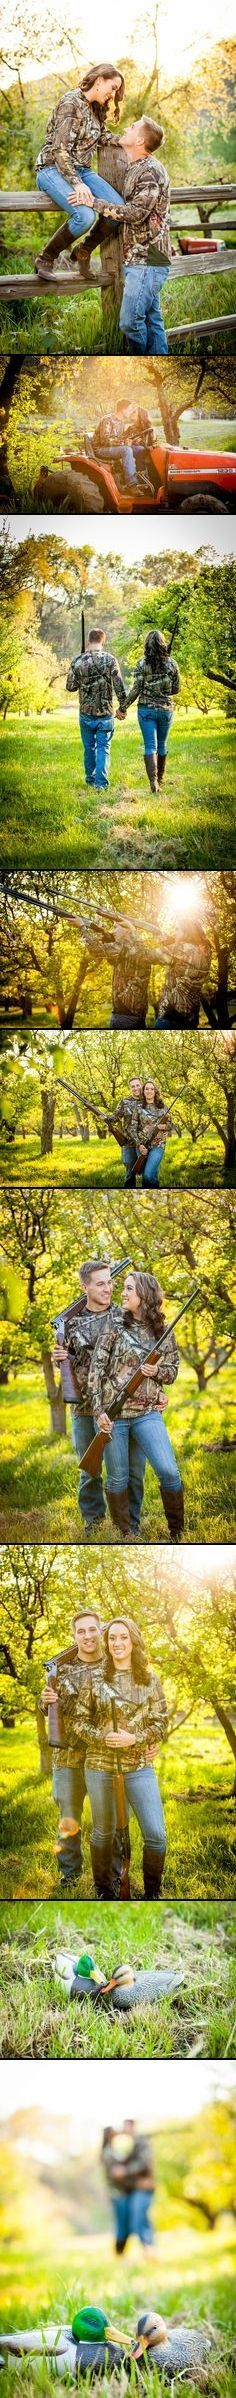 Country Duck Hunting Camo Engagement Pictures